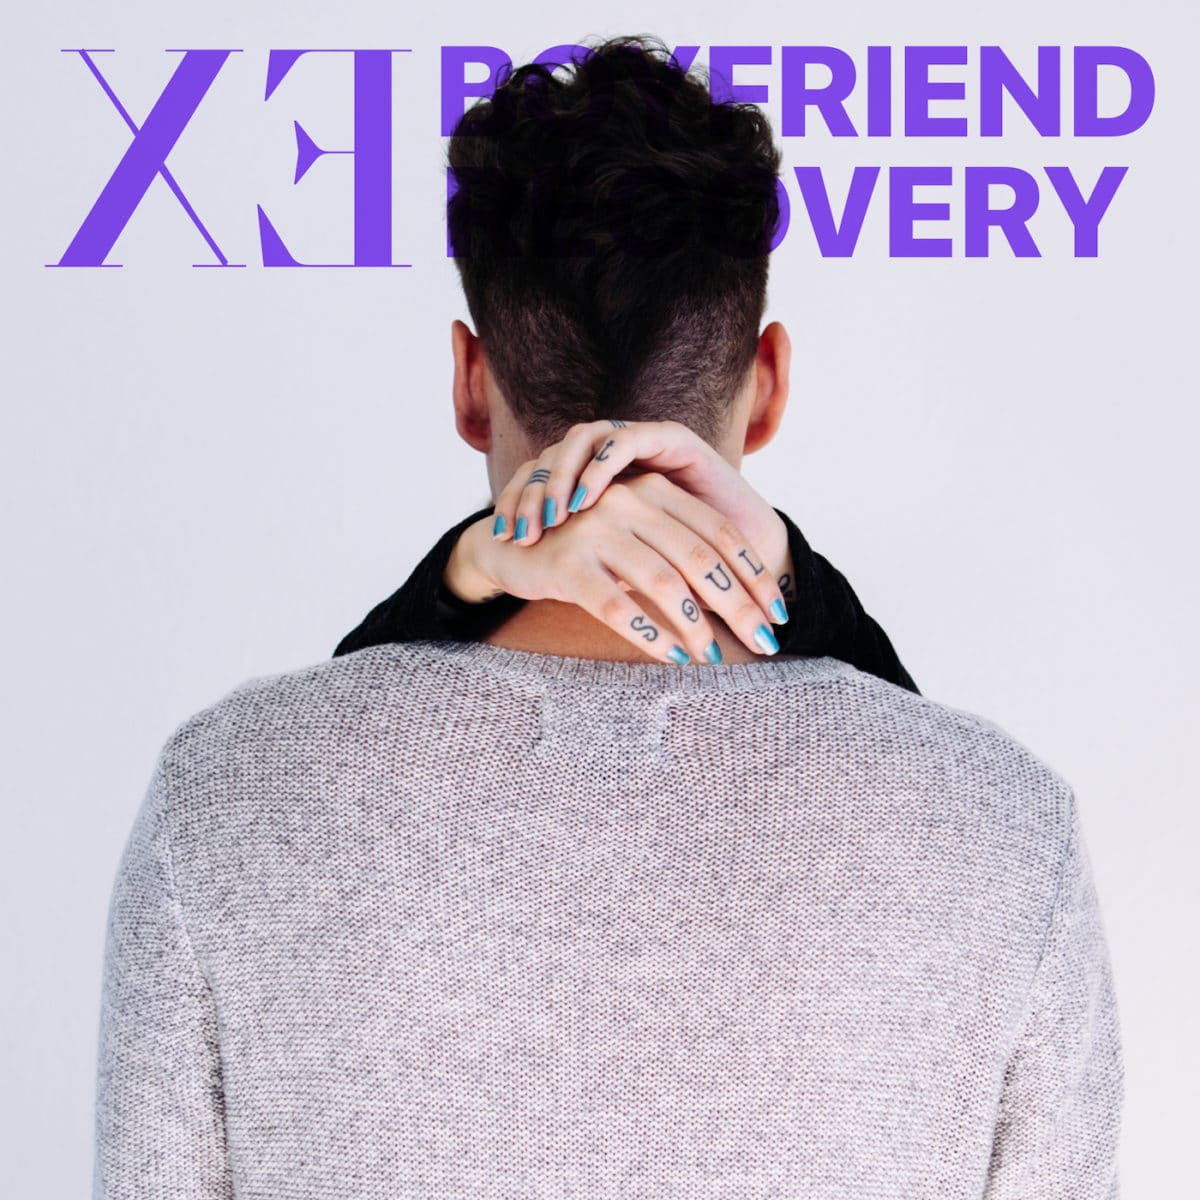 The Ex Boyfriend Recovery Podcast